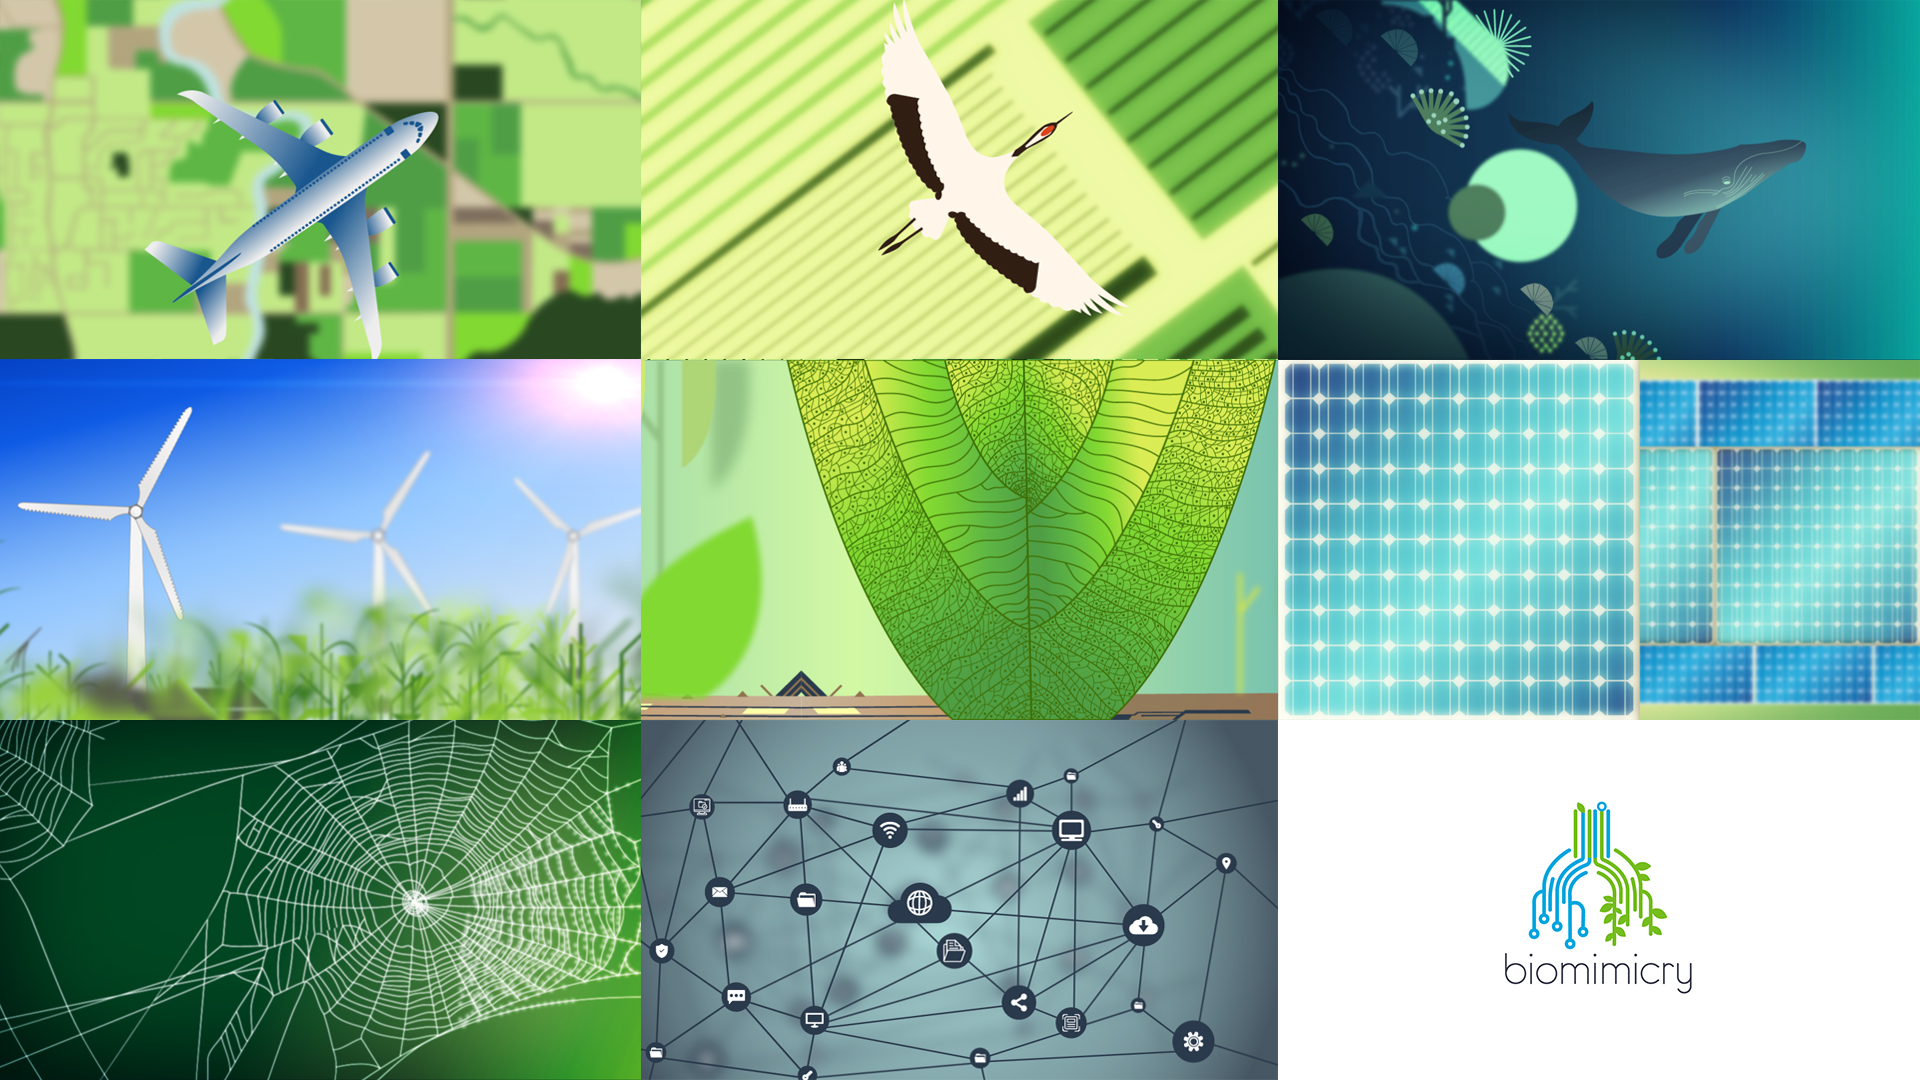 Biomimicry compositing